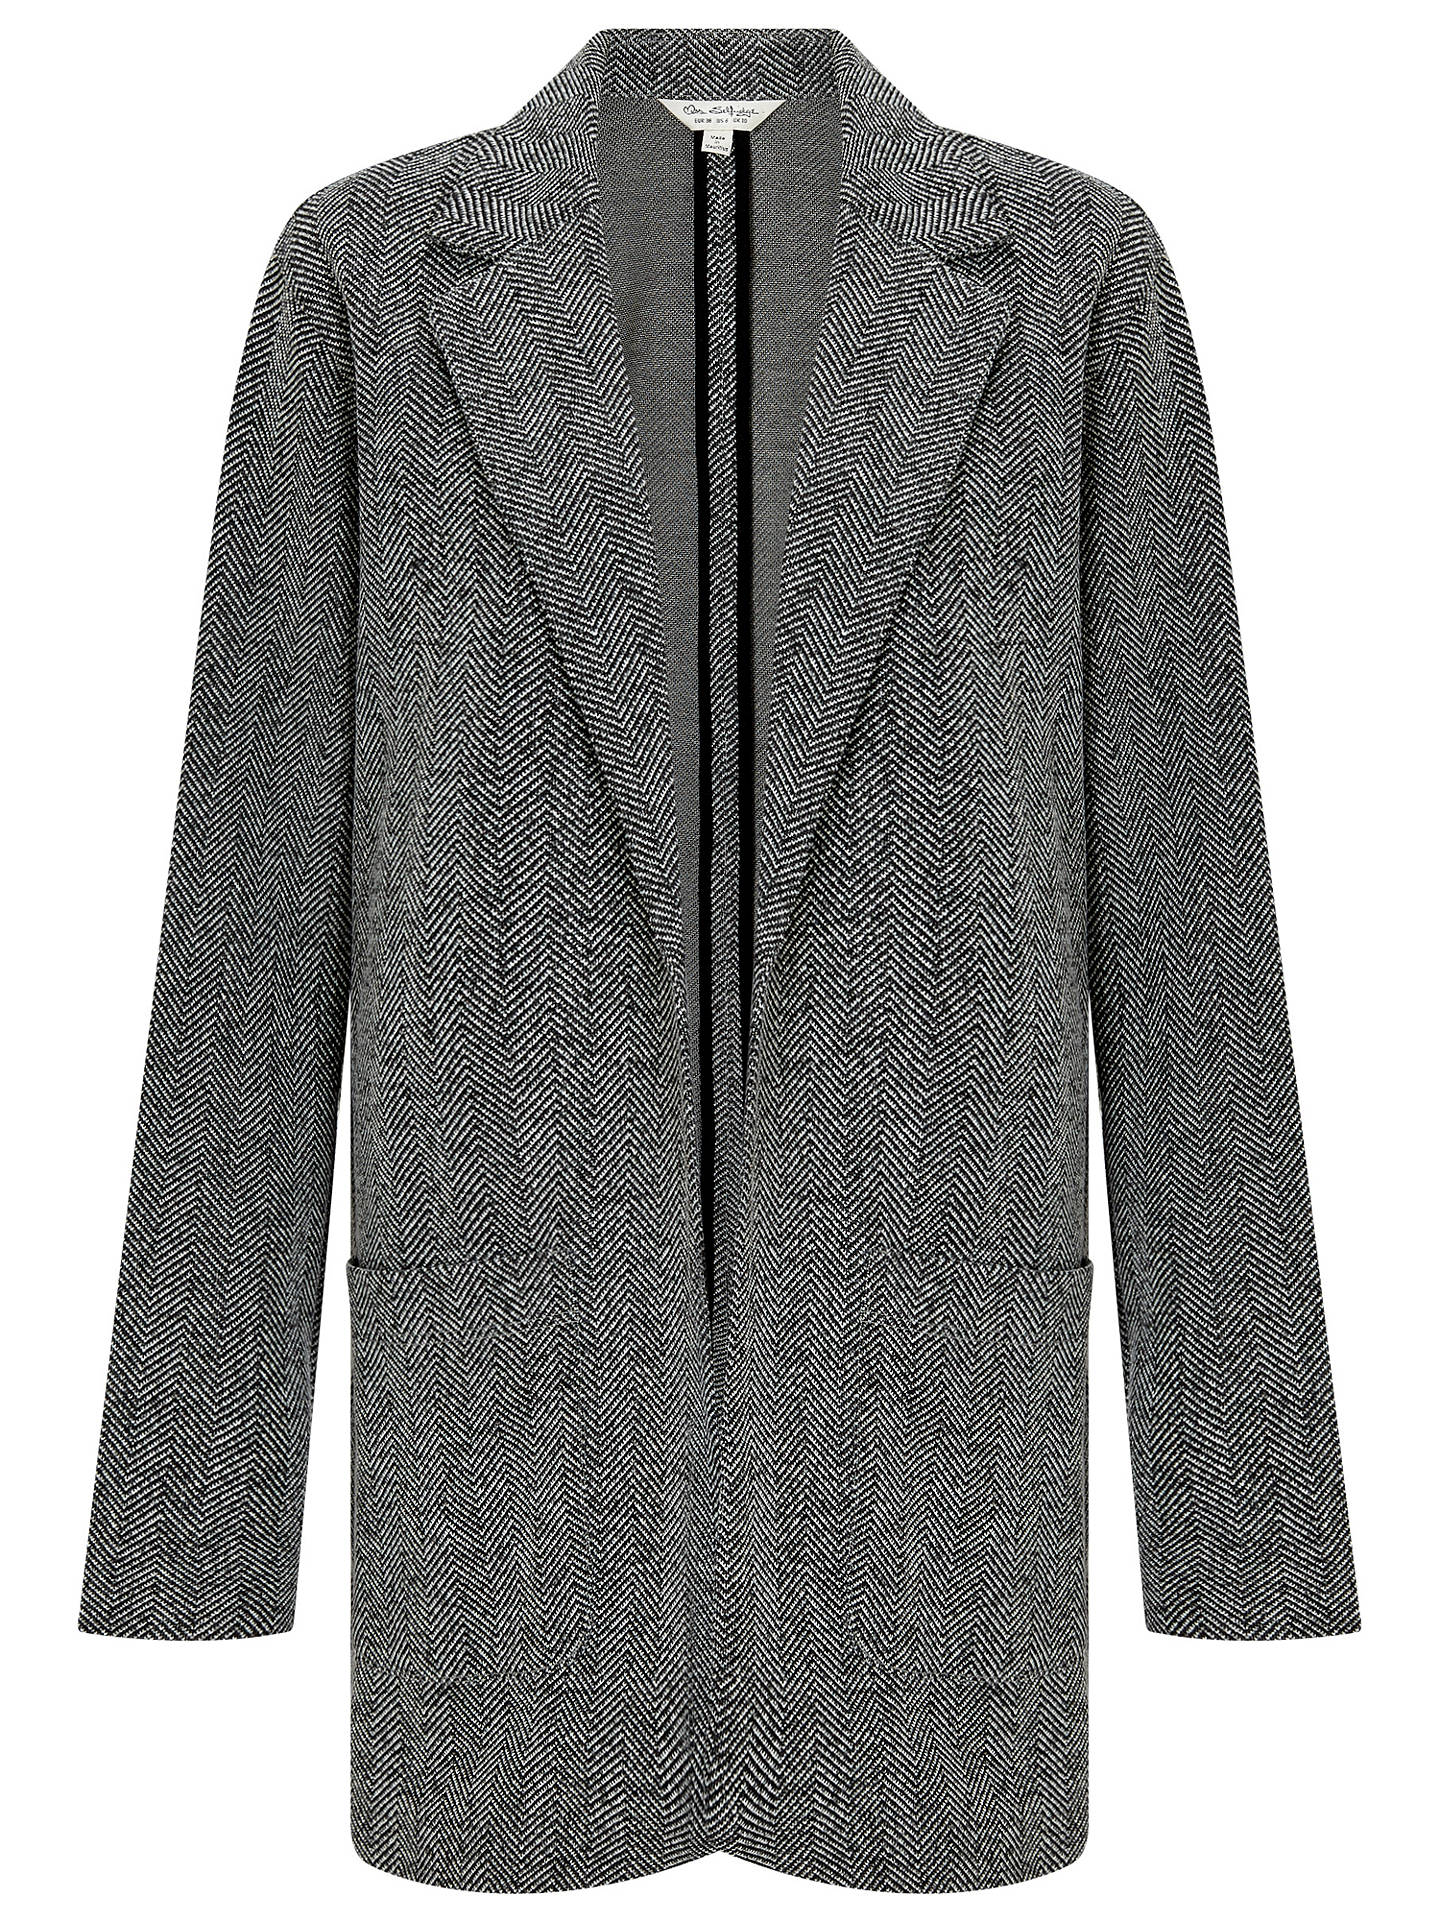 d81a758ec Miss Selfridge Tweed Boyfriend Blazer, Black at John Lewis & Partners